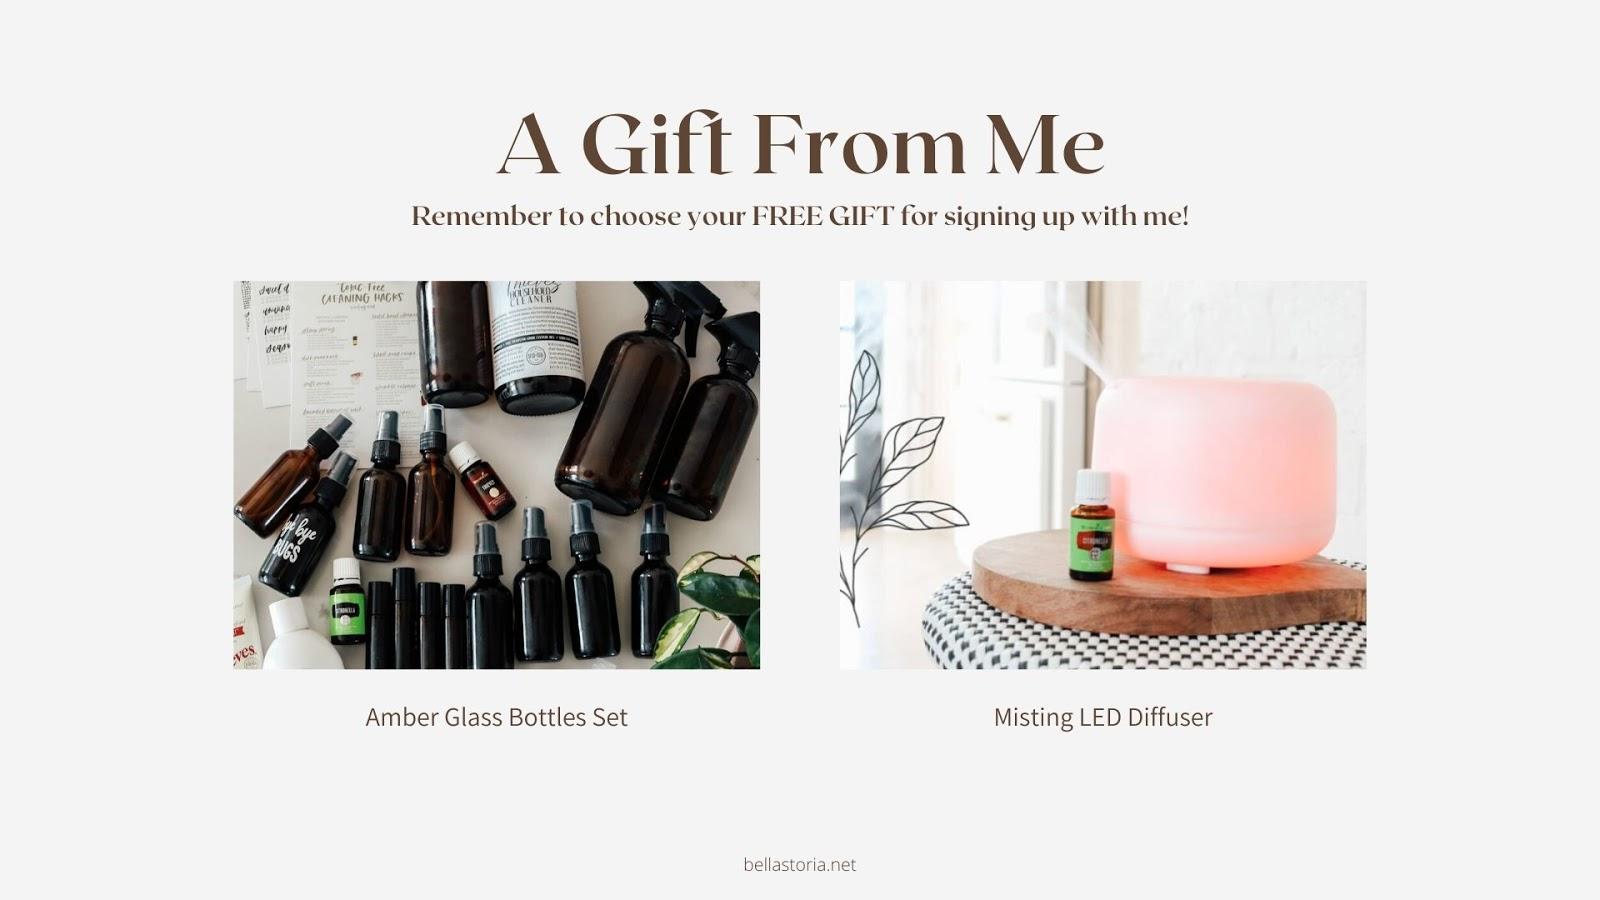 amber glass bottles and led misting diffuser gifts for essential oils when you sign up for a premium starter kit and essential rewards with bellastoria.net